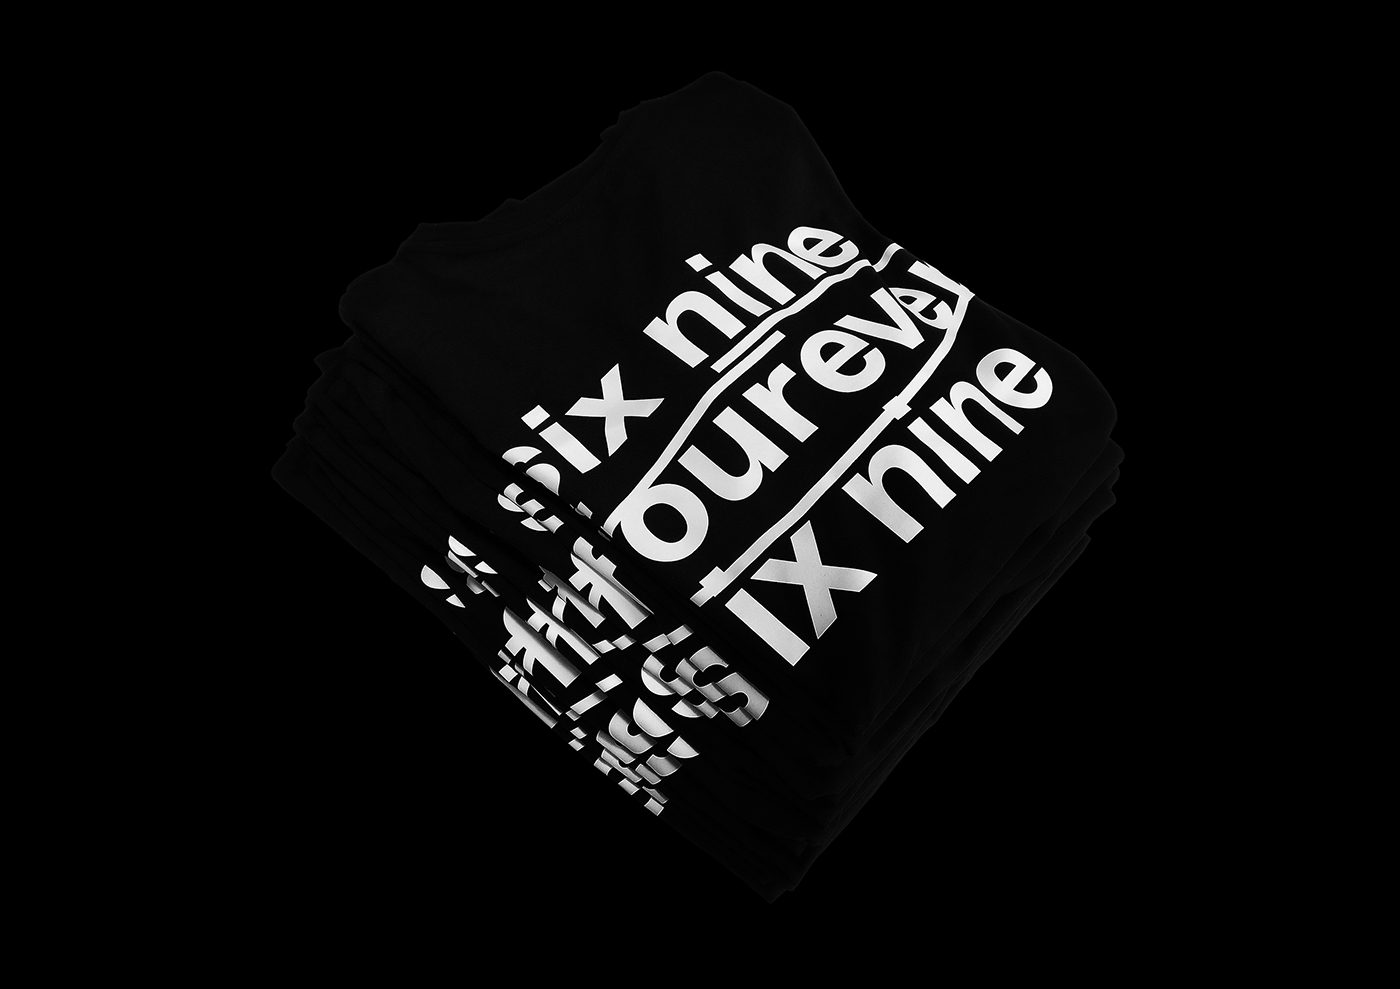 typography   shirts streetwear Packaging blackandwhite patch logo jersey Event Clothing